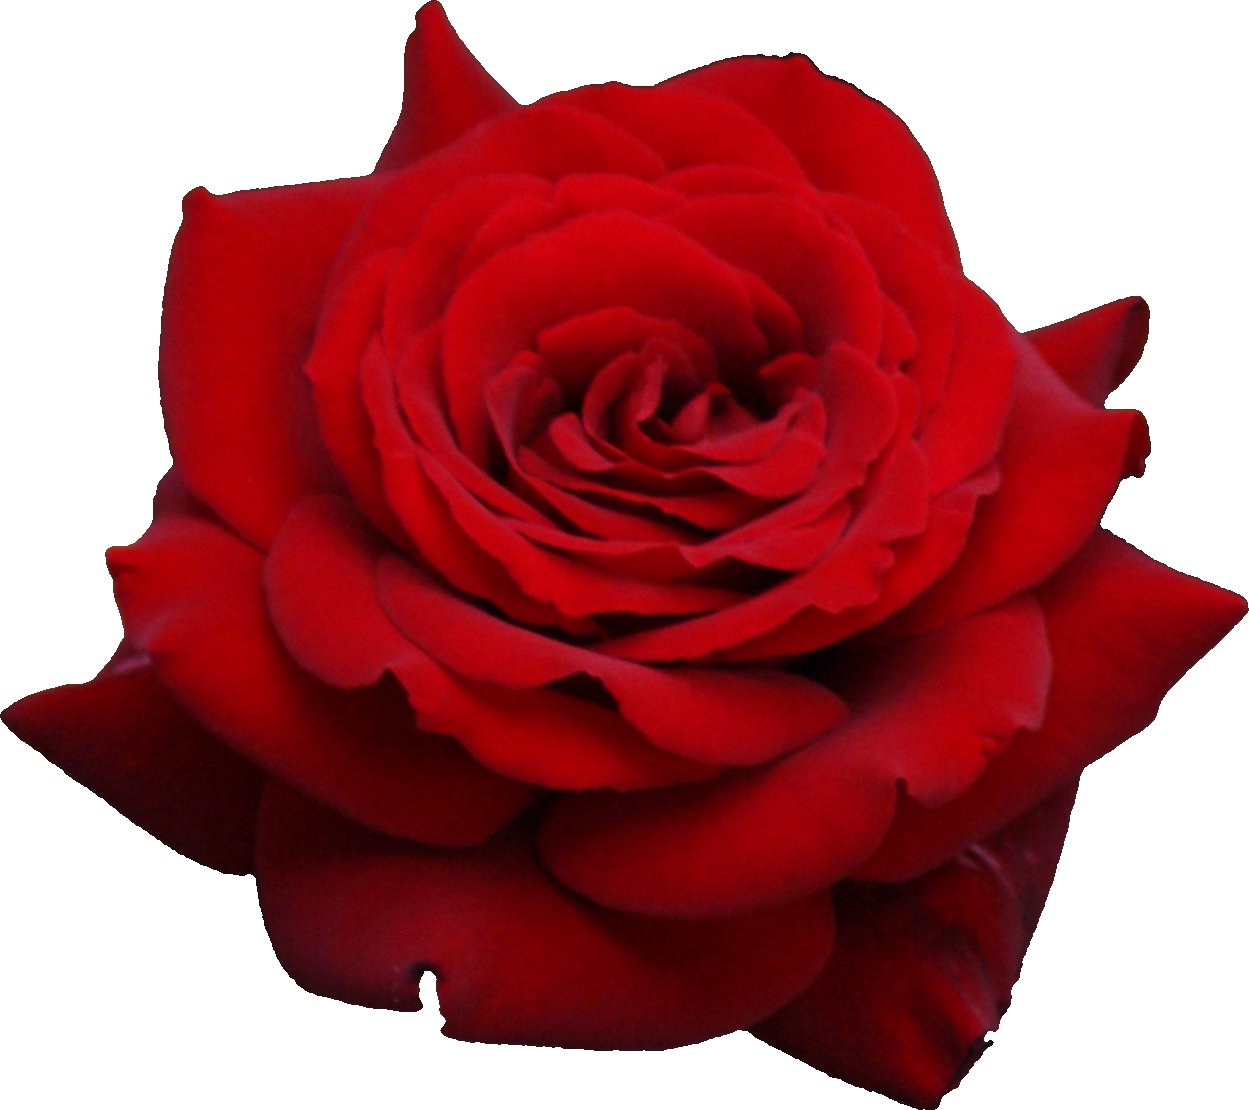 Red roses png. Rose flower images free